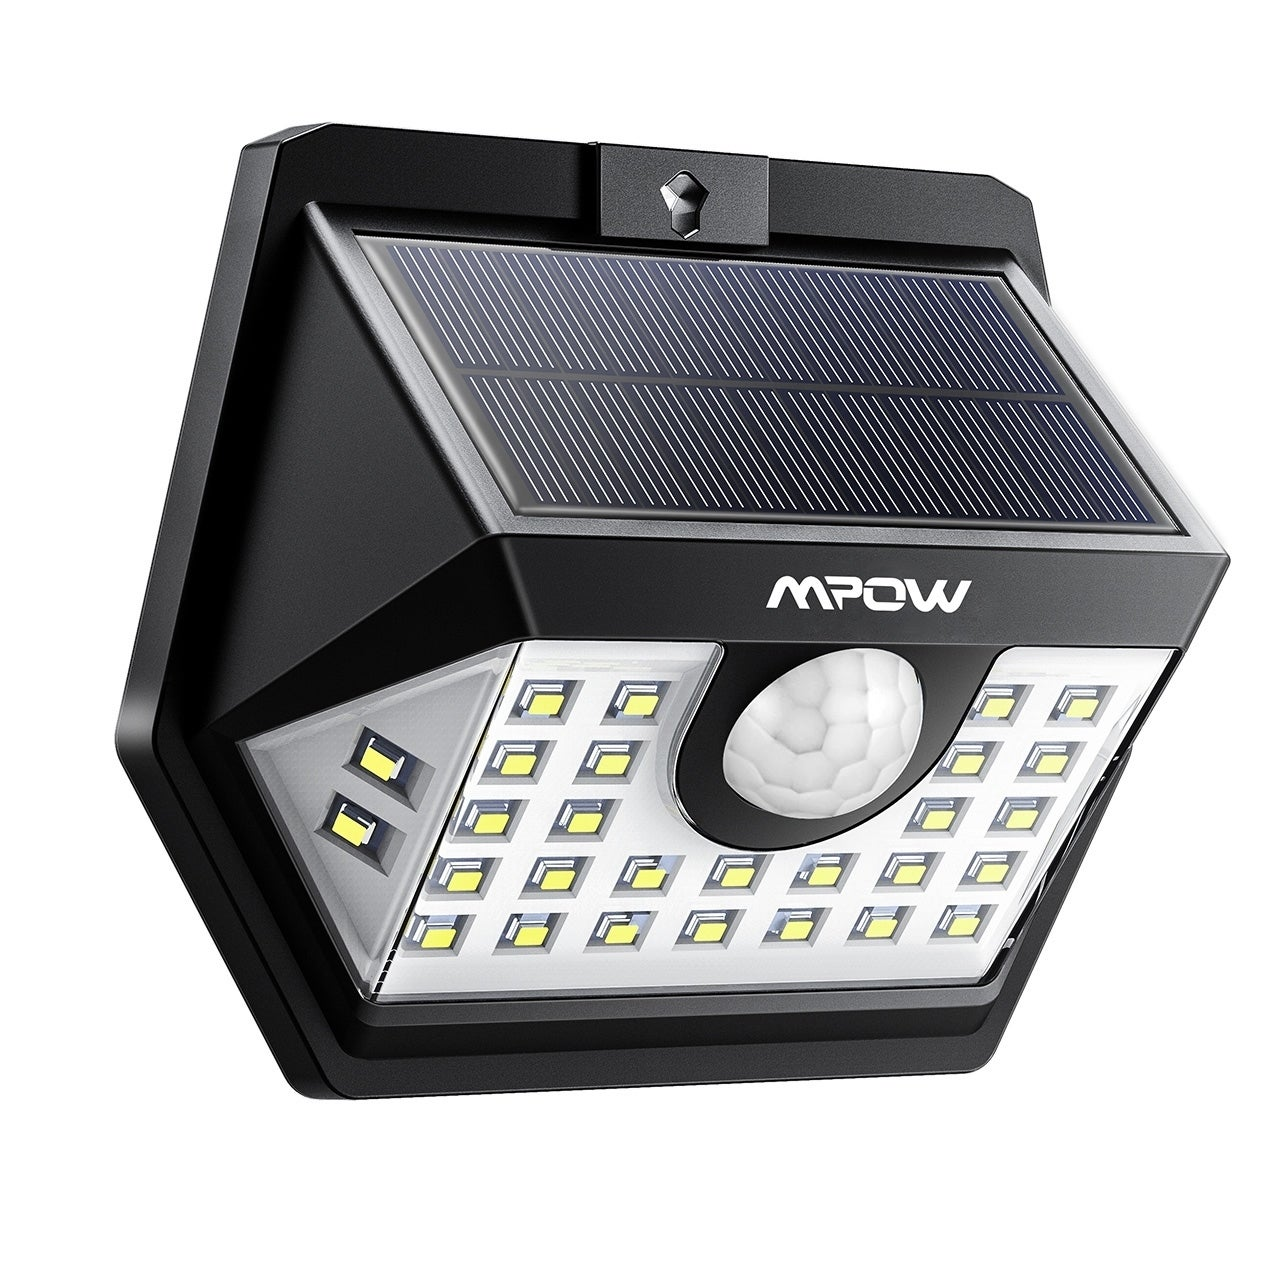 Mpow 30 Led Solar Motion Sensor Lights Ip65 Waterproof Outdoor With 3 Lighting Modes